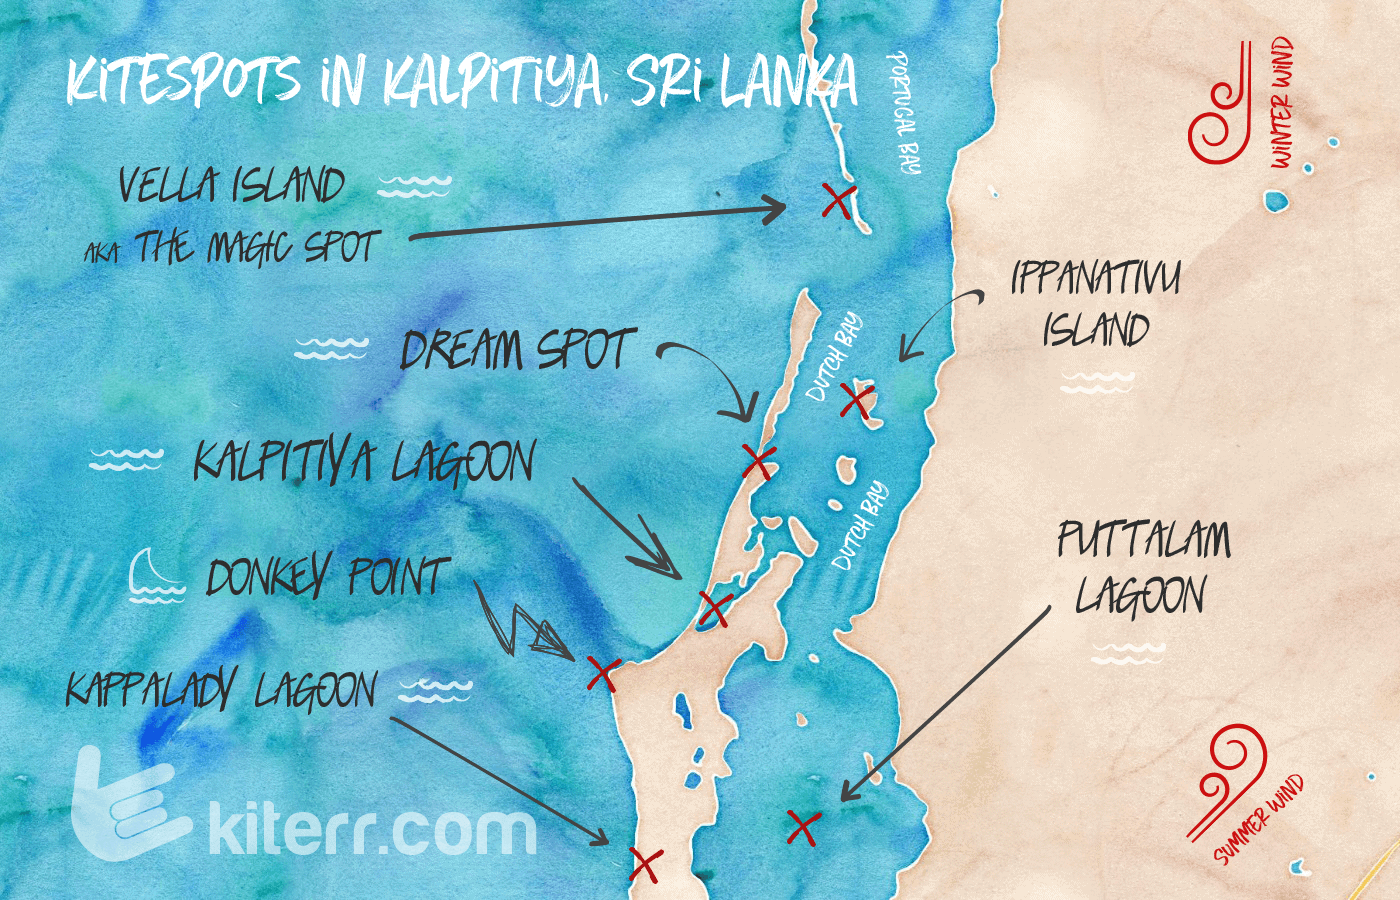 The best kitesurfing spots in Kalpitiya, Sri Lanka - Spot guide & Map // Kiterr.com